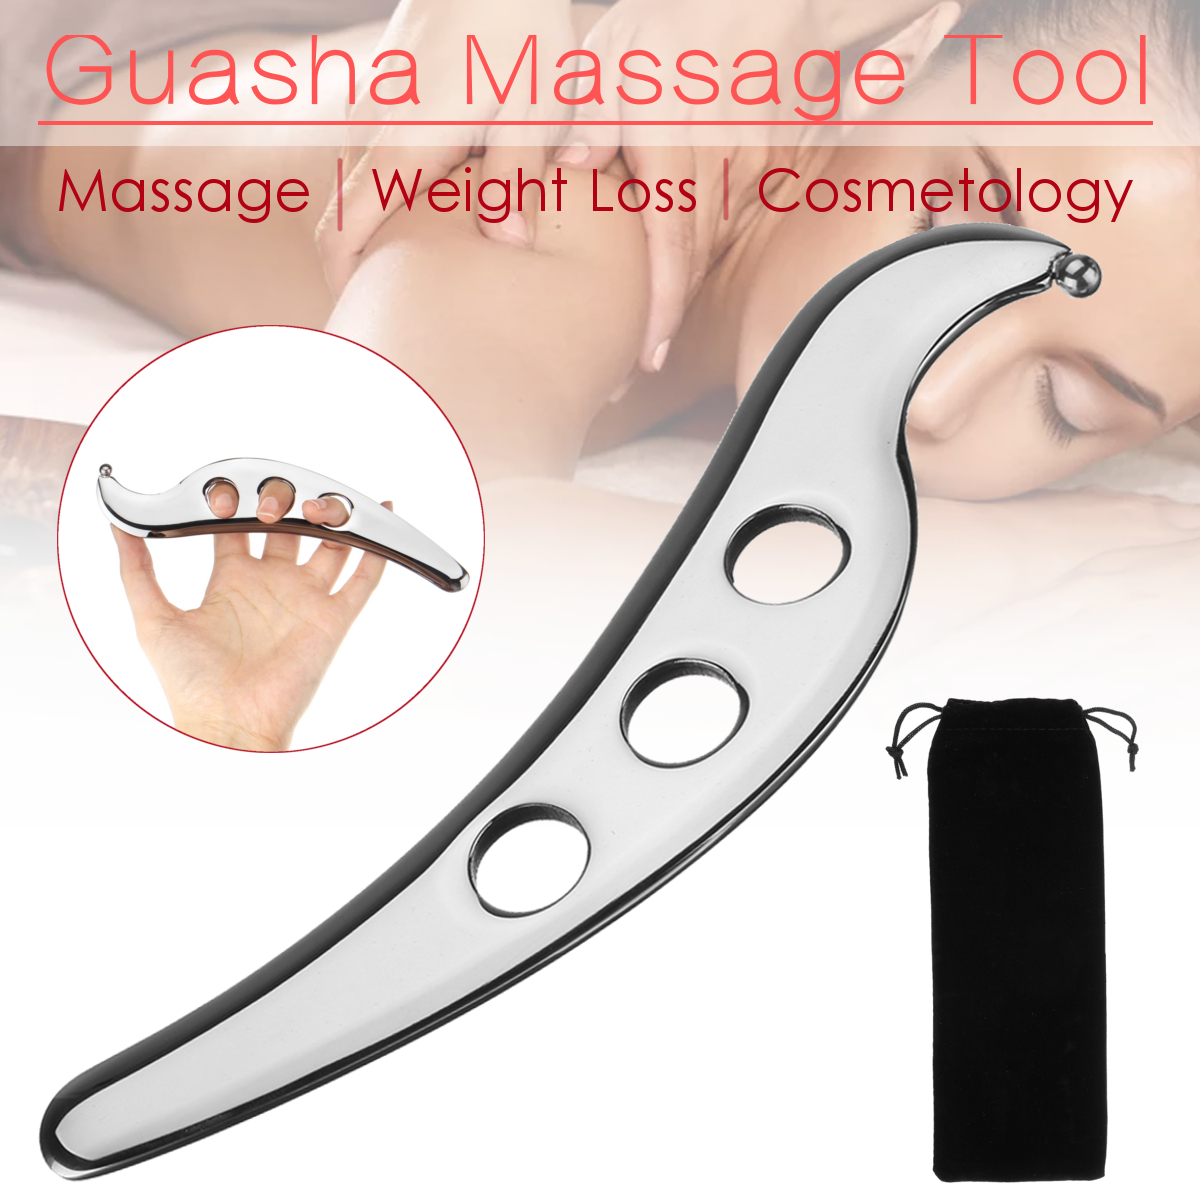 304 Stainless Steel Gua Sha Massager Tool Scraper Physical Therapy Loose Muscle Meridian Massage Machine SPA Board Body Health